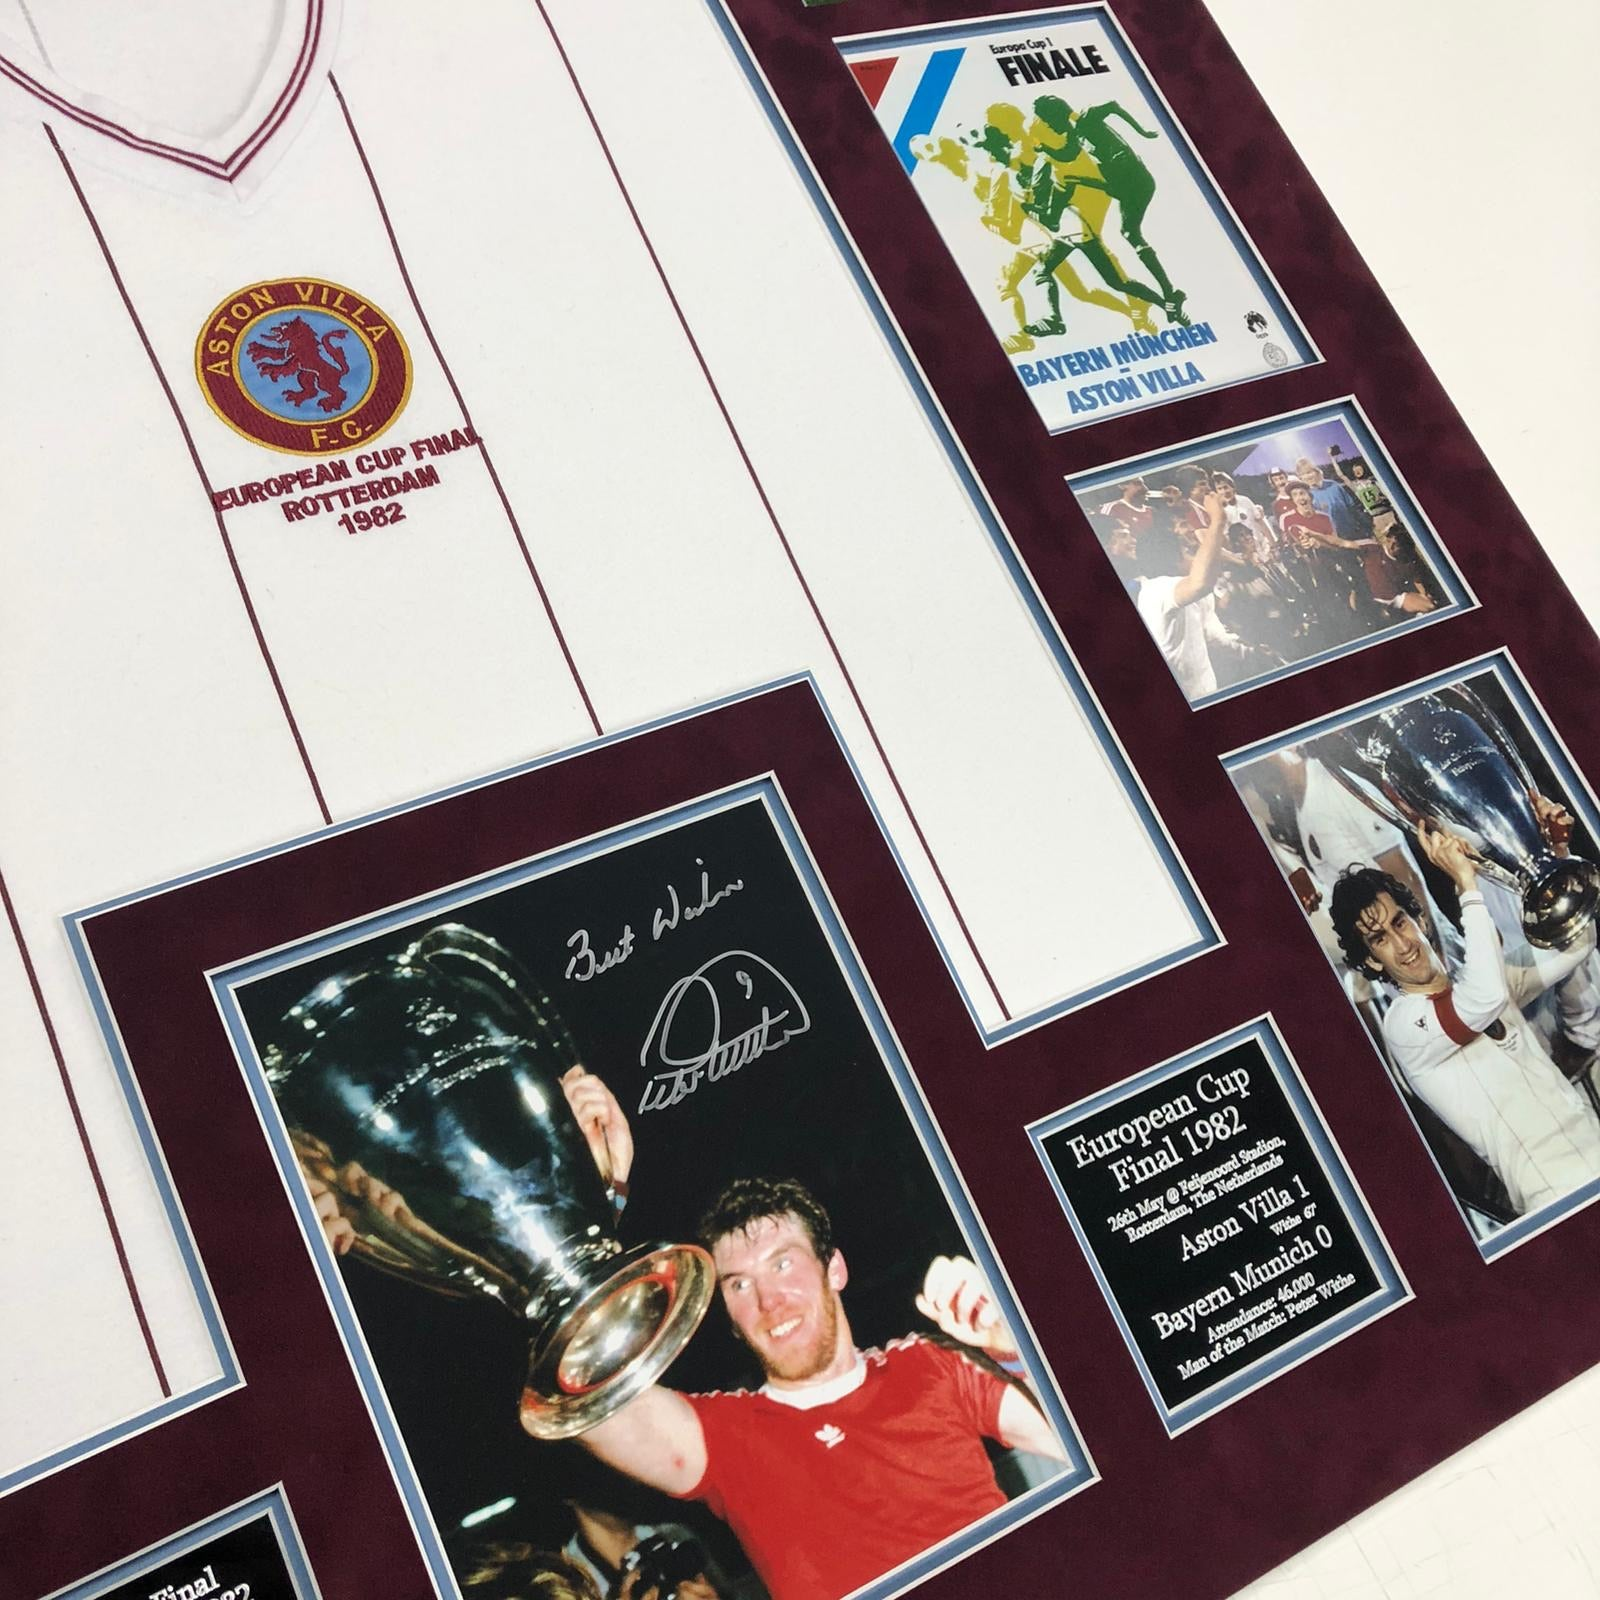 Aston Villa 1982 European Cup Frame - Signed by Peter Withe and Nigel Spink